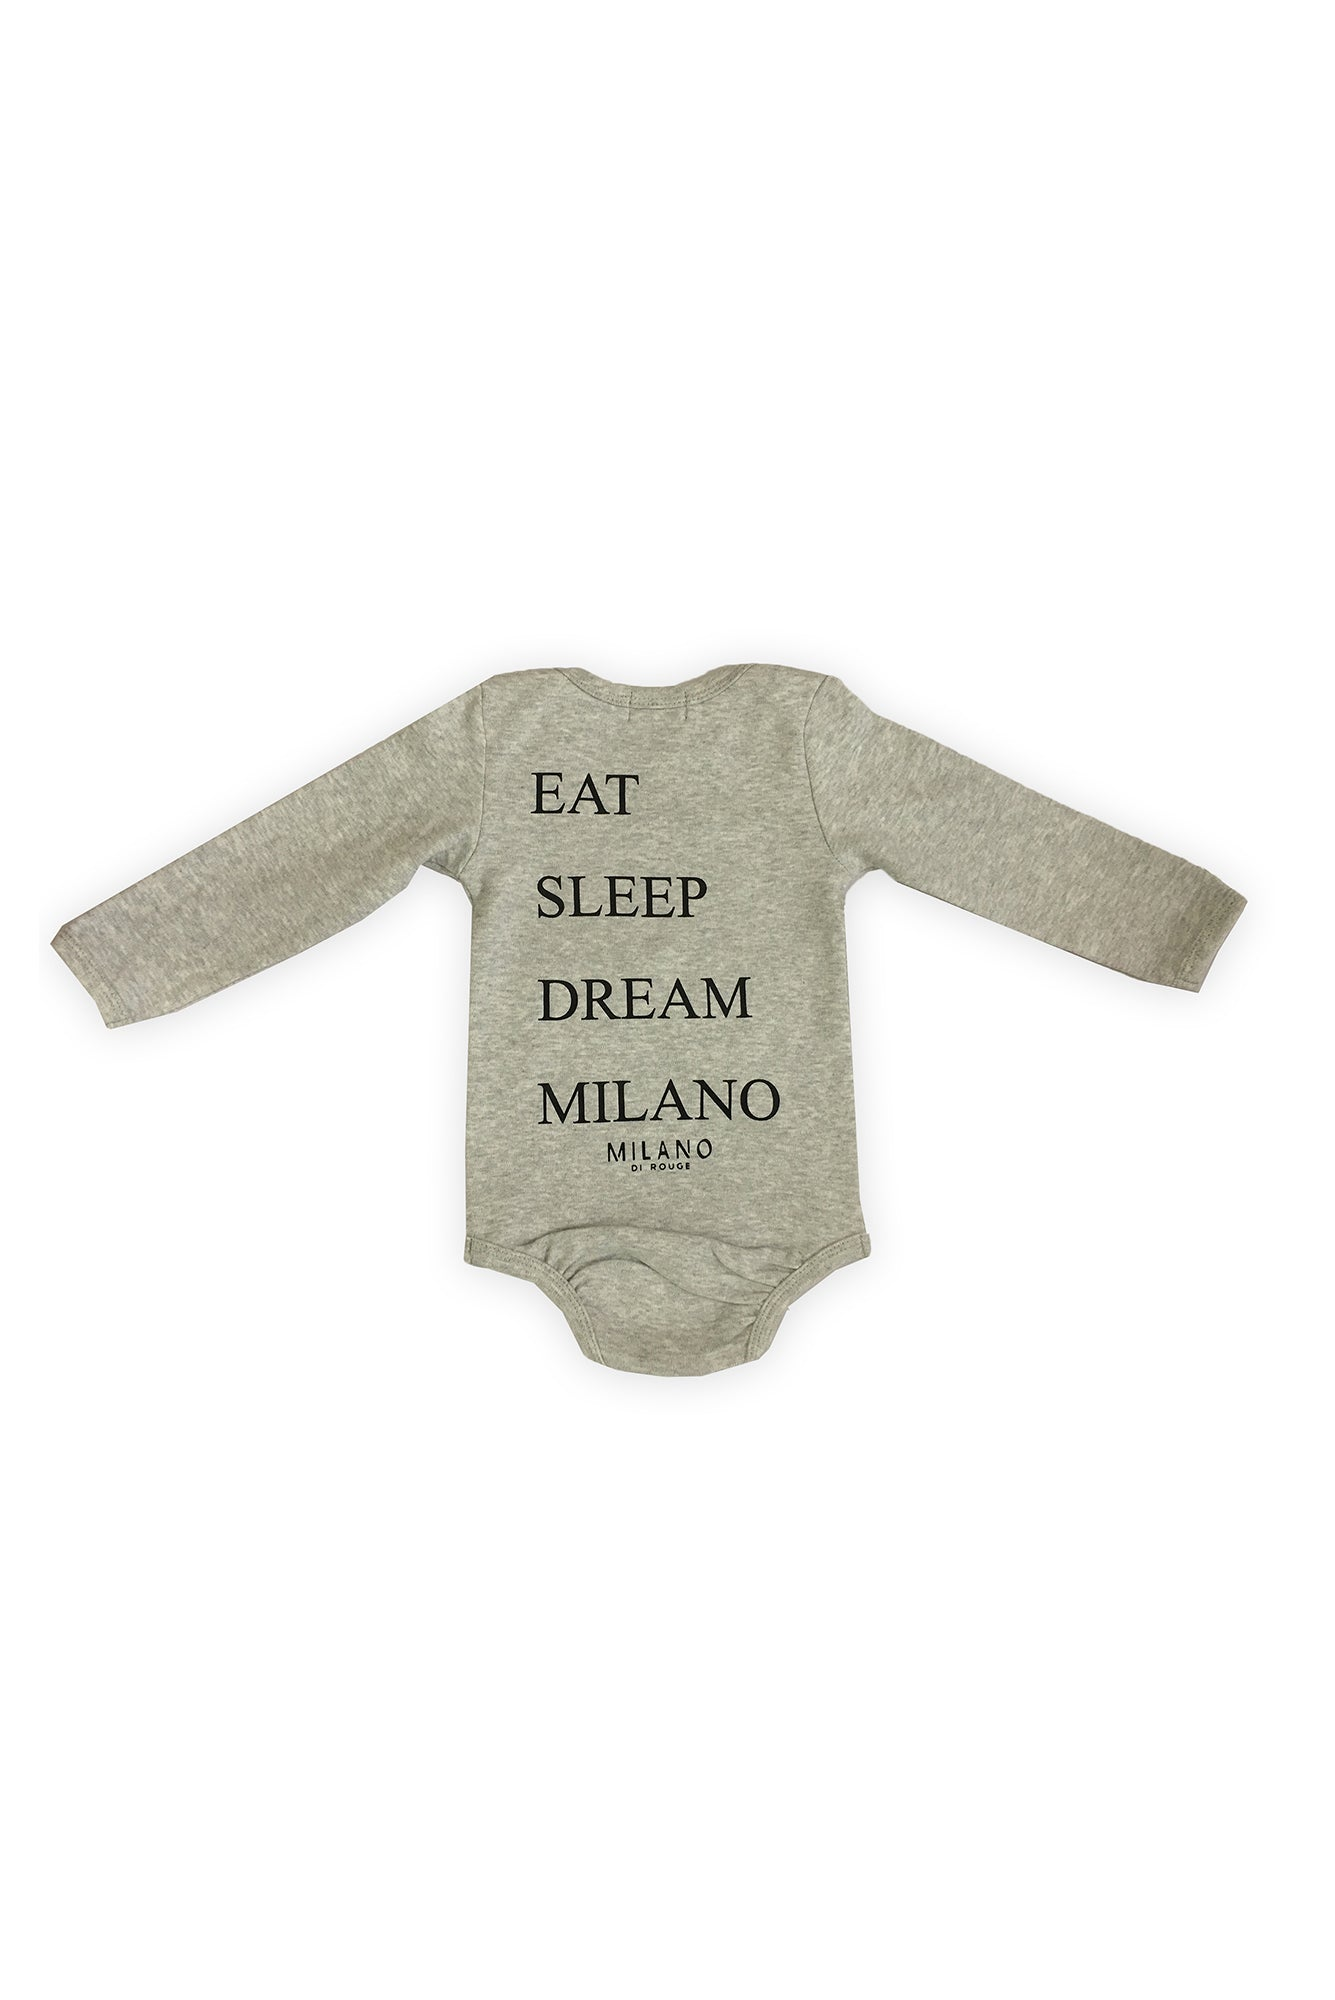 Dream Milano Onesie Long Sleeve